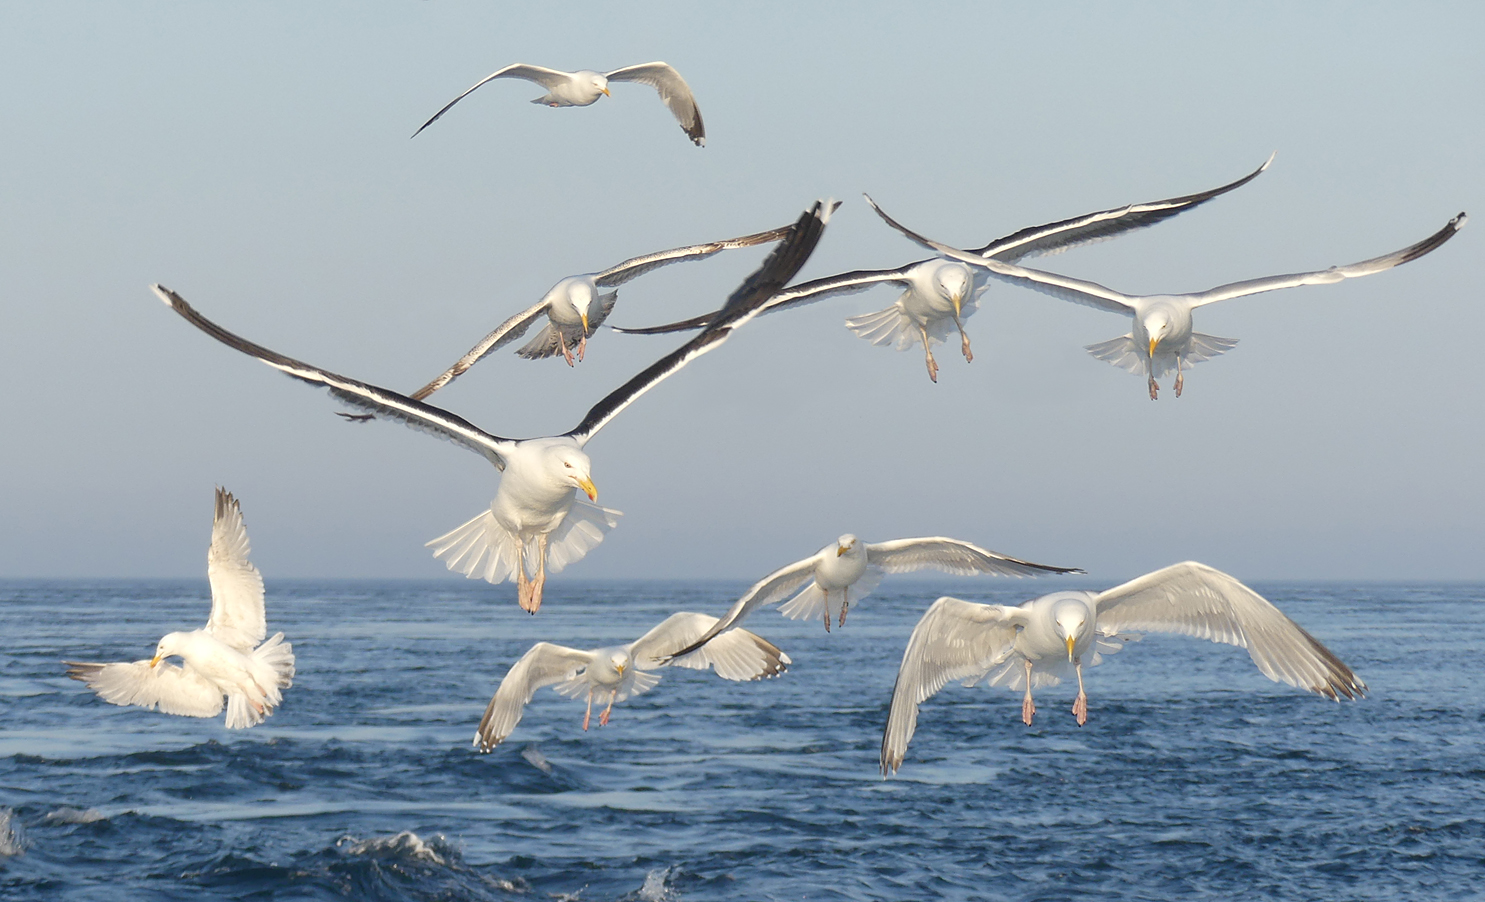 Gulls following the boat - I love the composition in this photo, almost balletic.